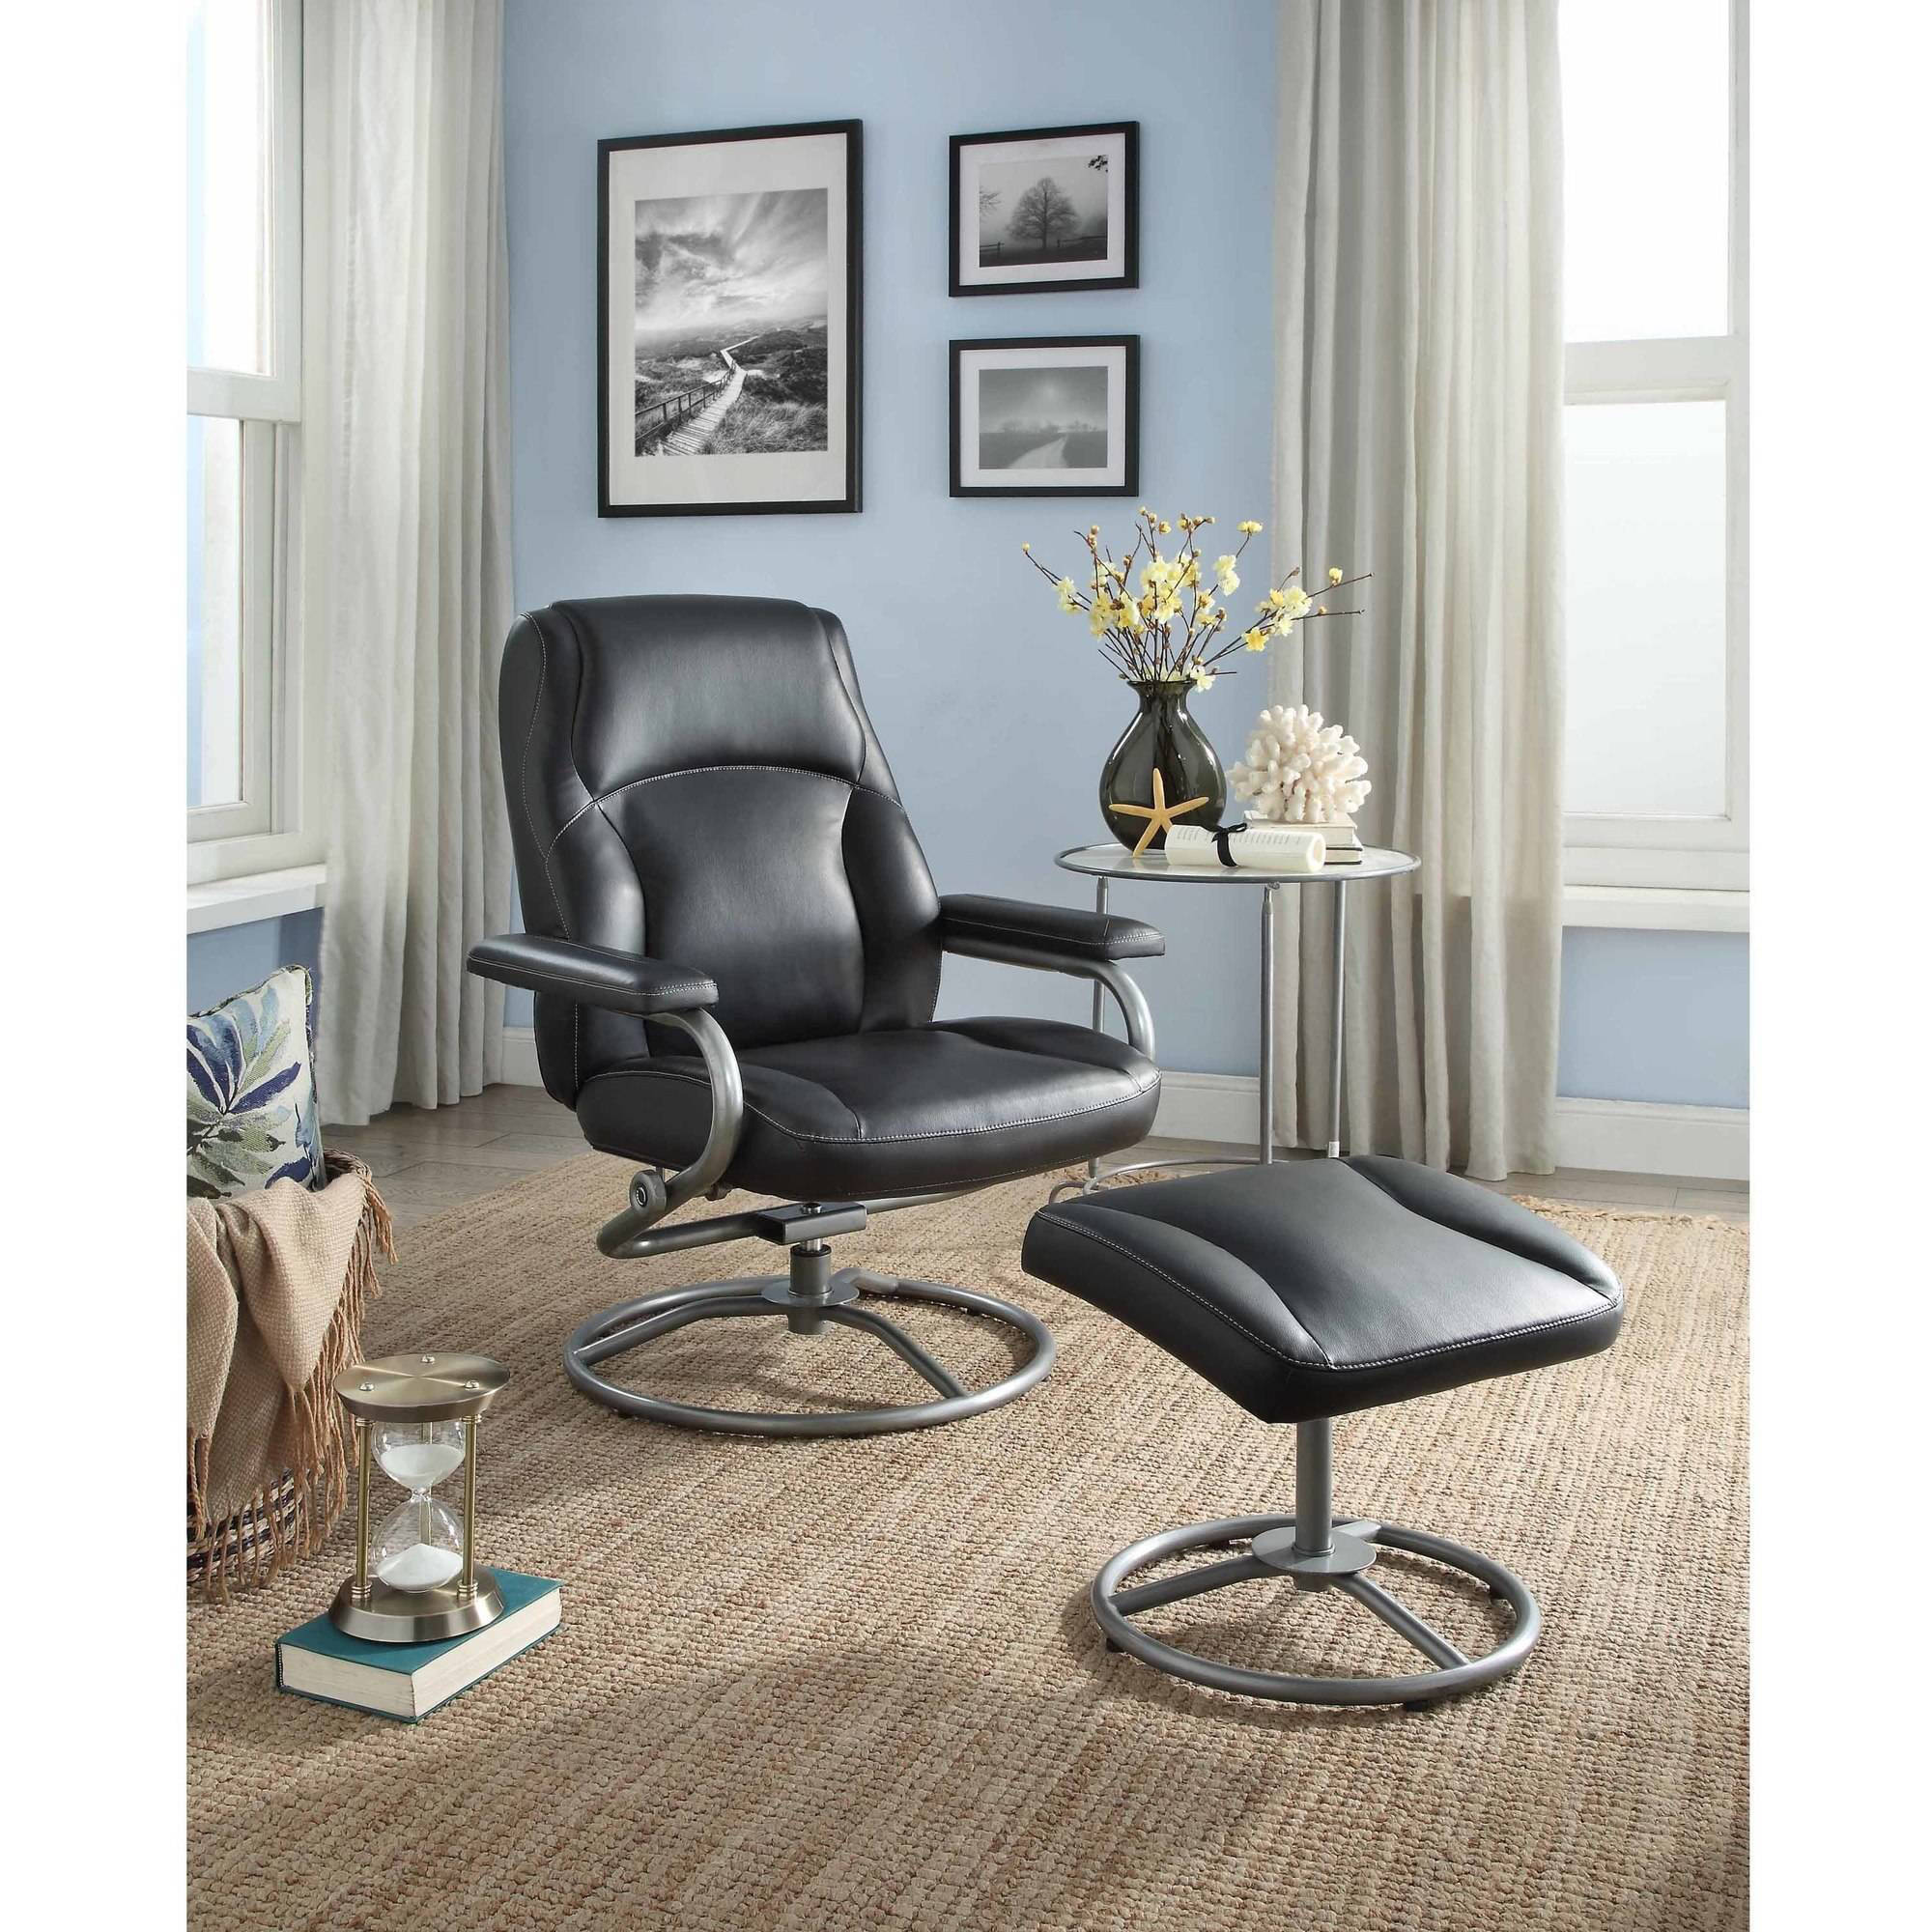 Excellent Mainstays Plush Pillowed Recliner Swivel Chair And Ottoman Set Multiple Available Colors Walmart Com Pdpeps Interior Chair Design Pdpepsorg